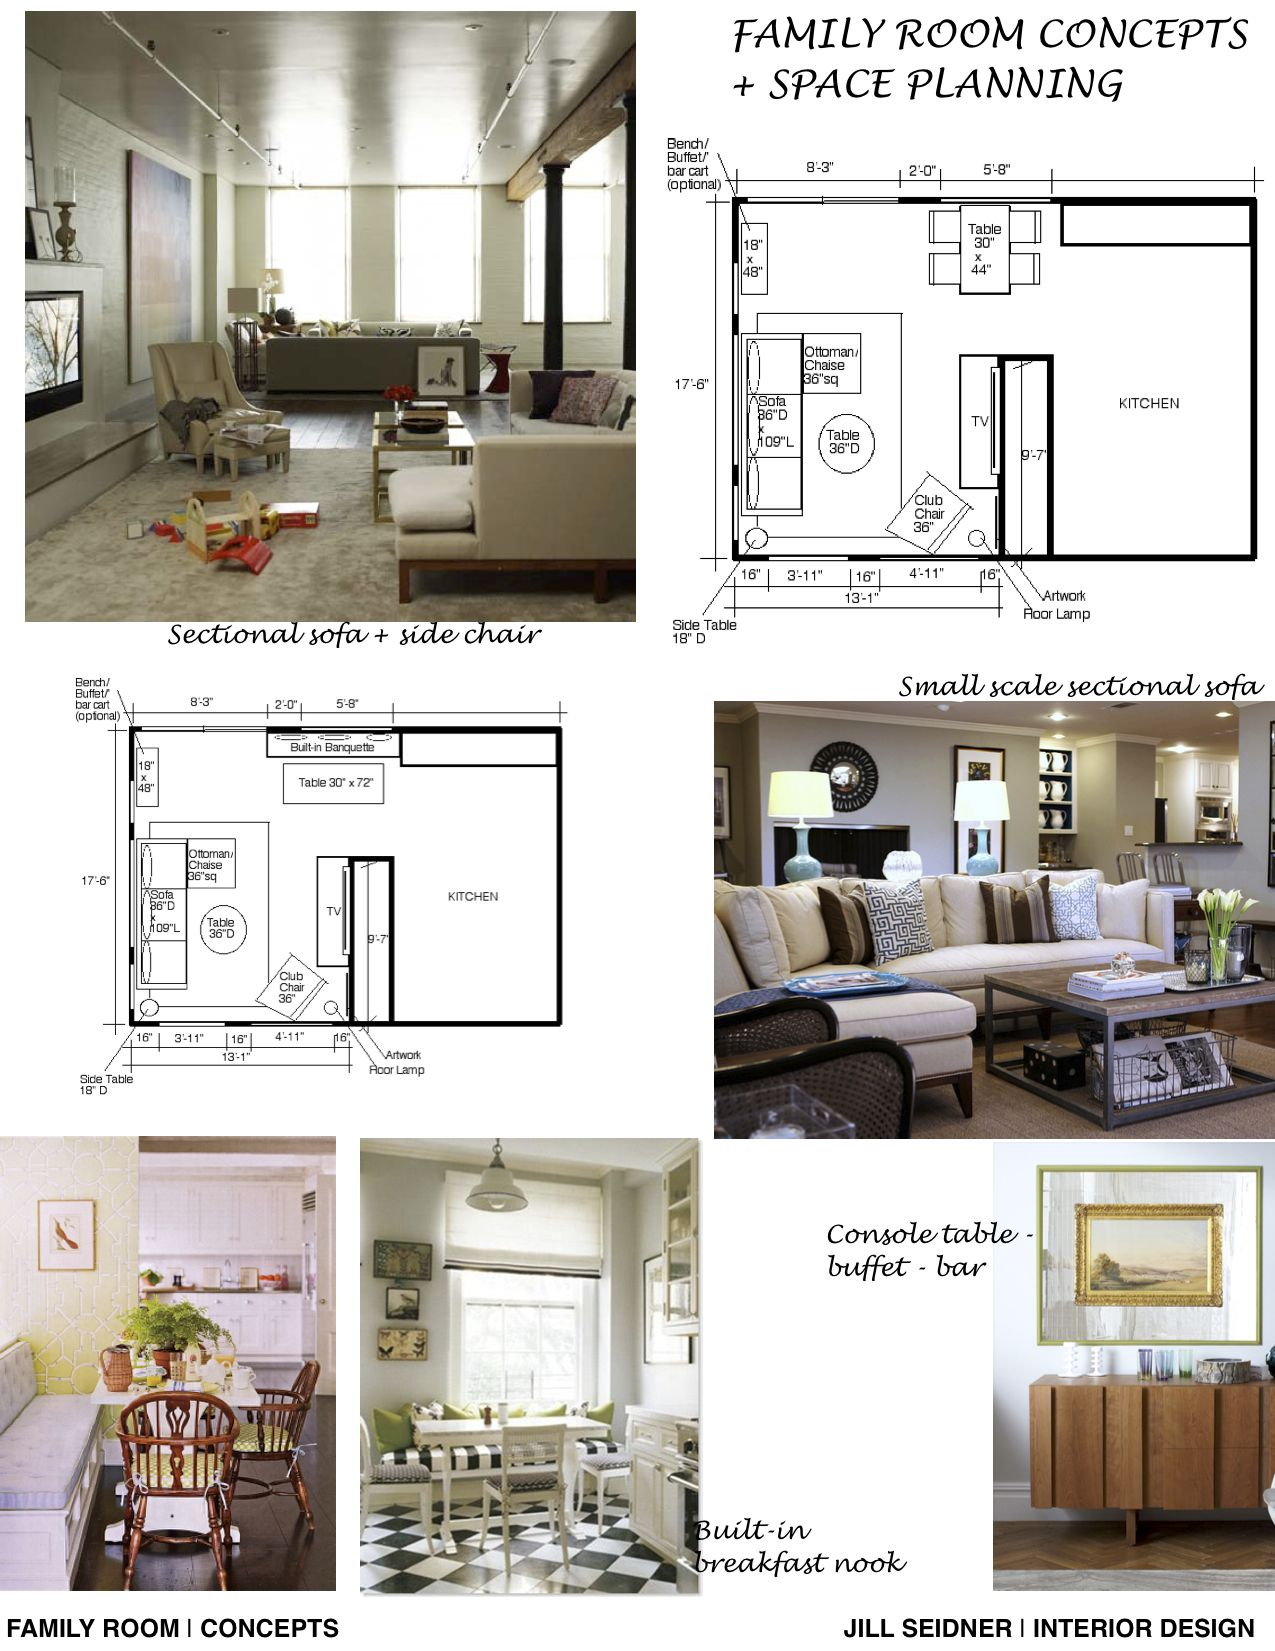 Concept Board And Furniture Layouts For A Family Room Interior Design Layout Interior Design Mood Board Interior Design